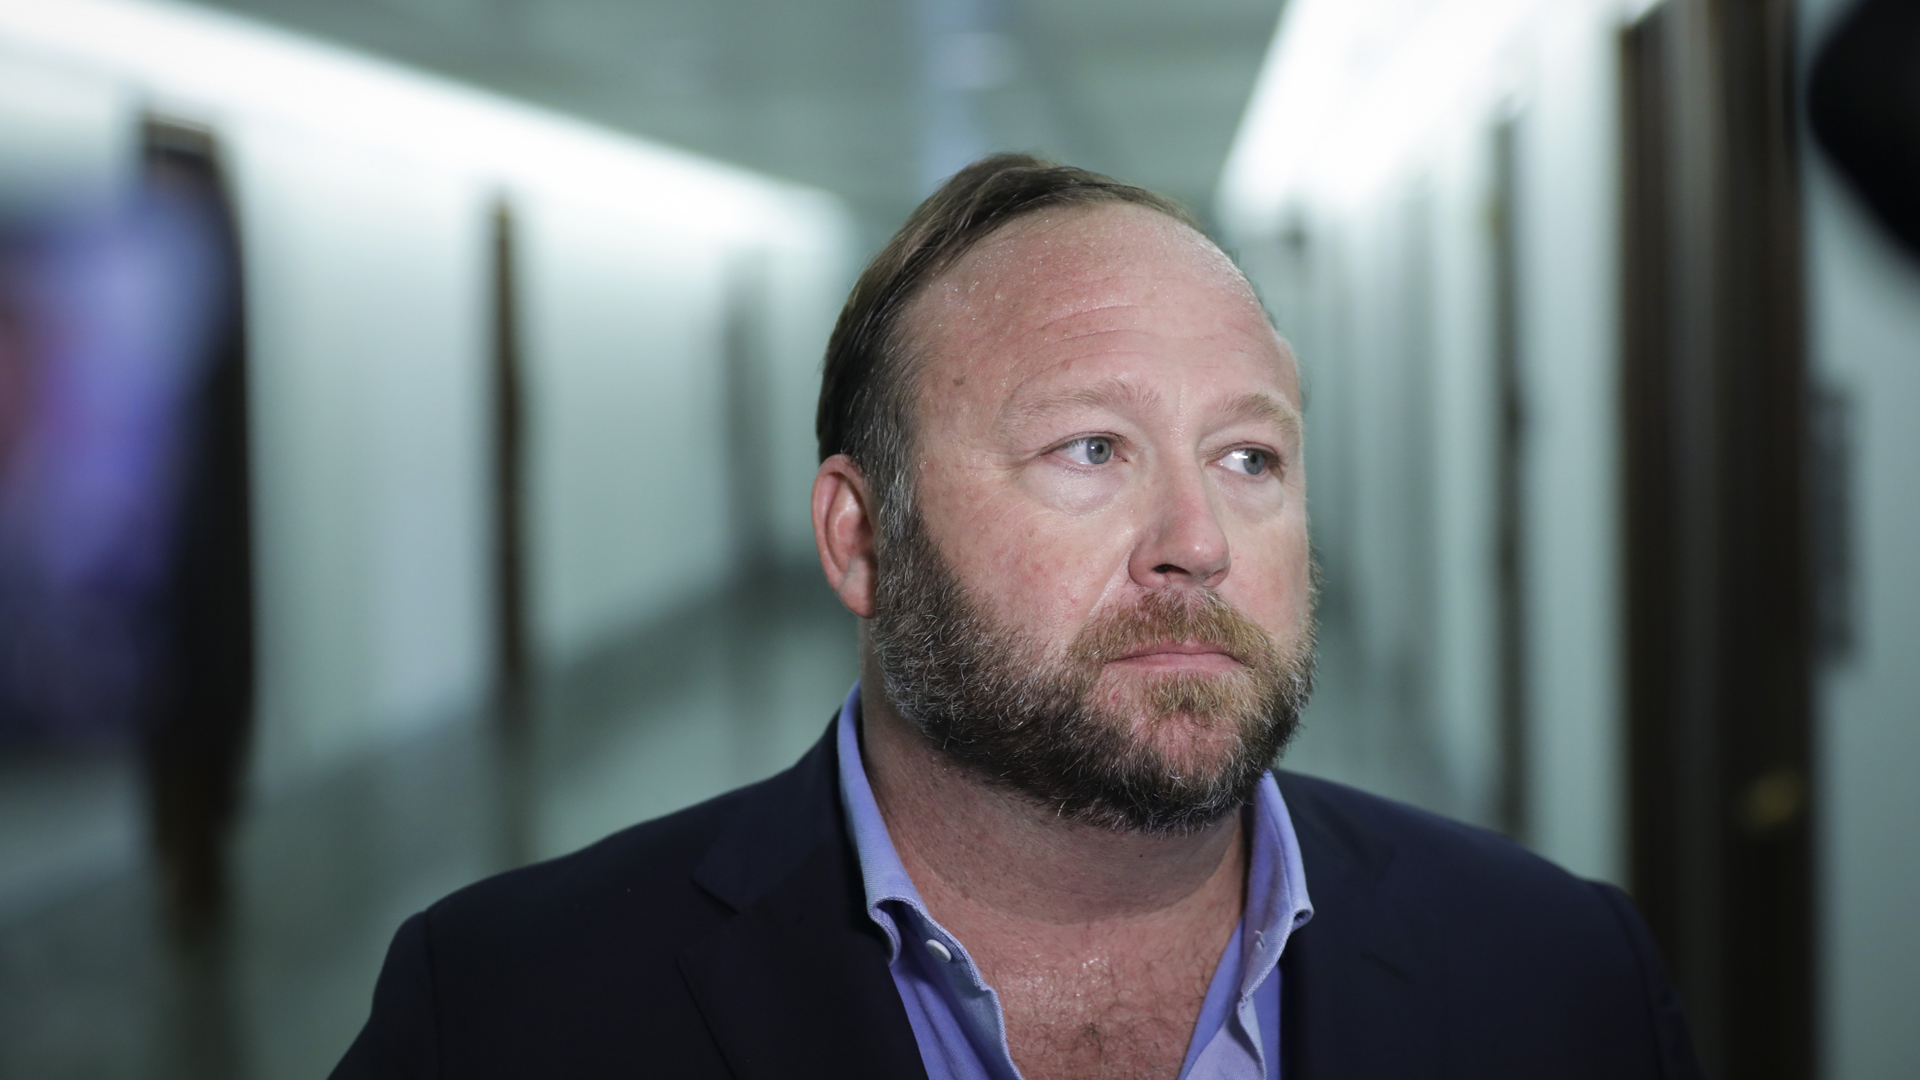 Alex Jones of InfoWars talks to reporters outside a Senate Intelligence Committee hearing concerning foreign influence operations' use of social media platforms, on Capitol Hill on Sept. 5, 2018. (Credit: Drew Angerer/Getty Images)